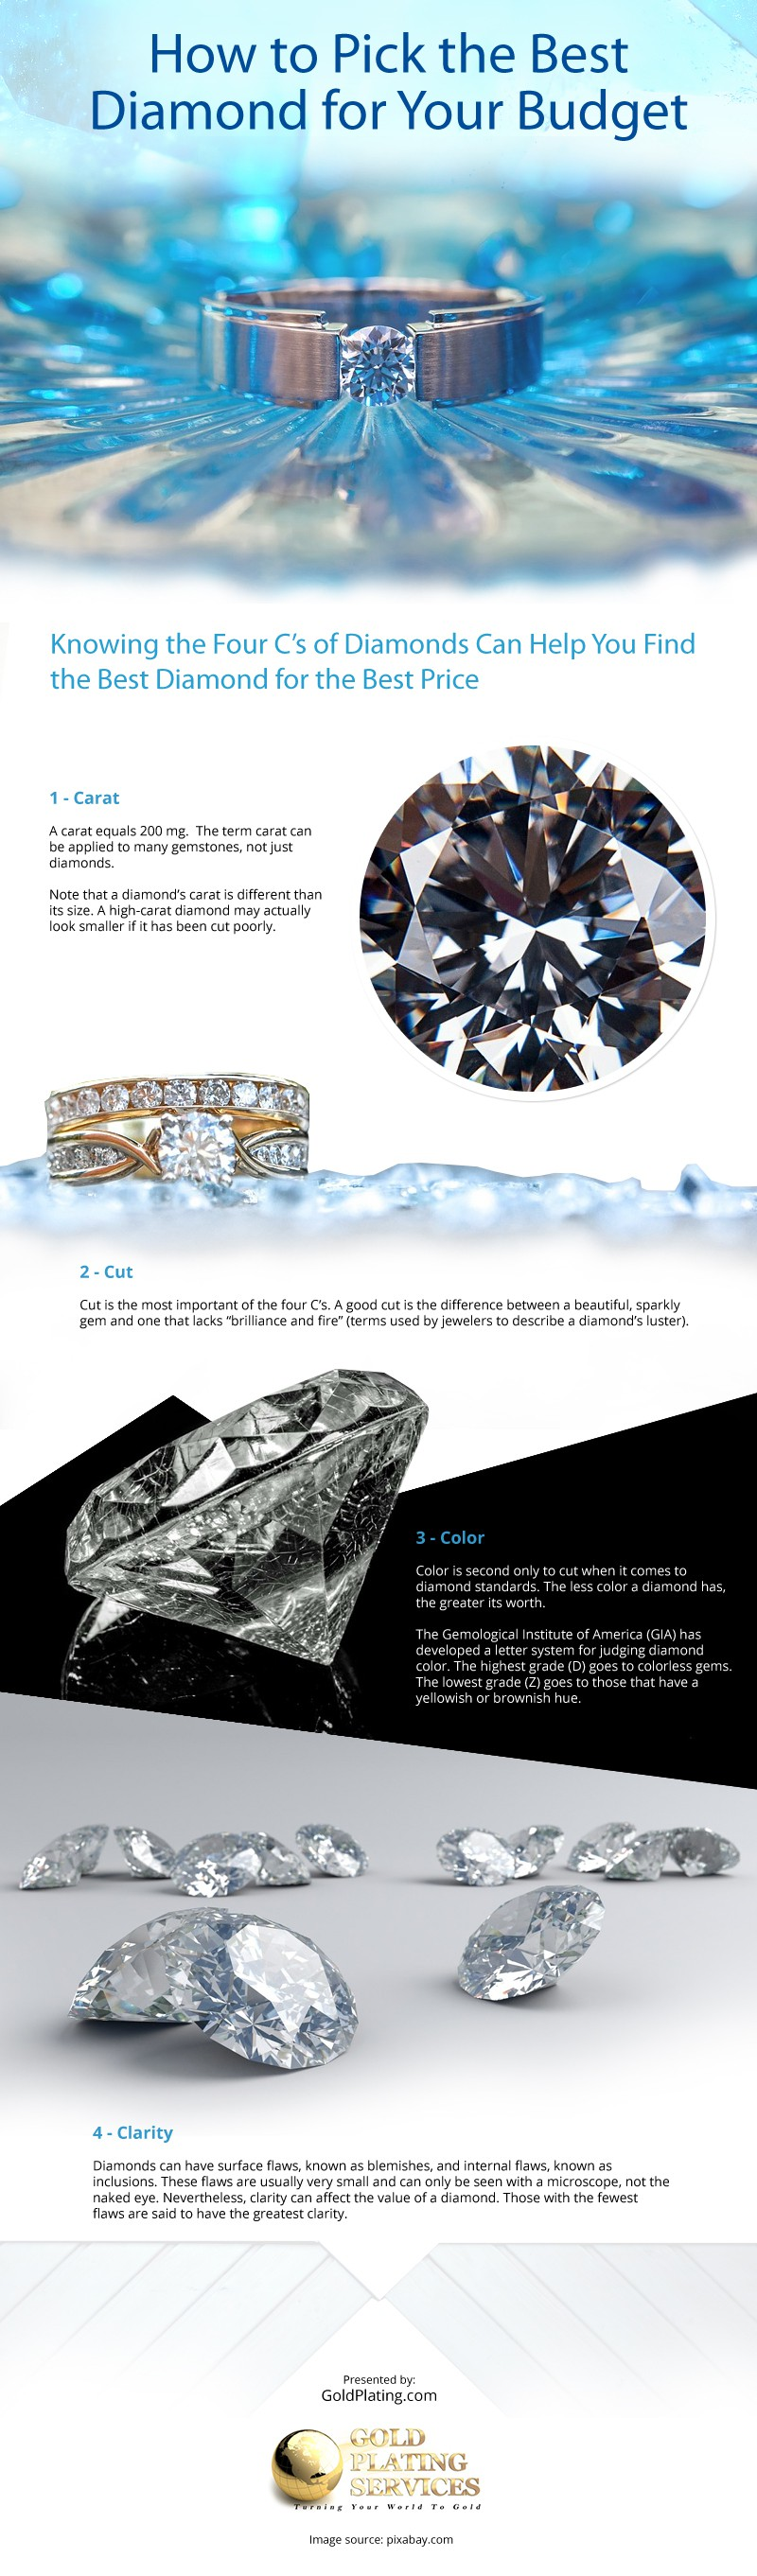 How to Pick the Best Diamond for your Budget Infographic